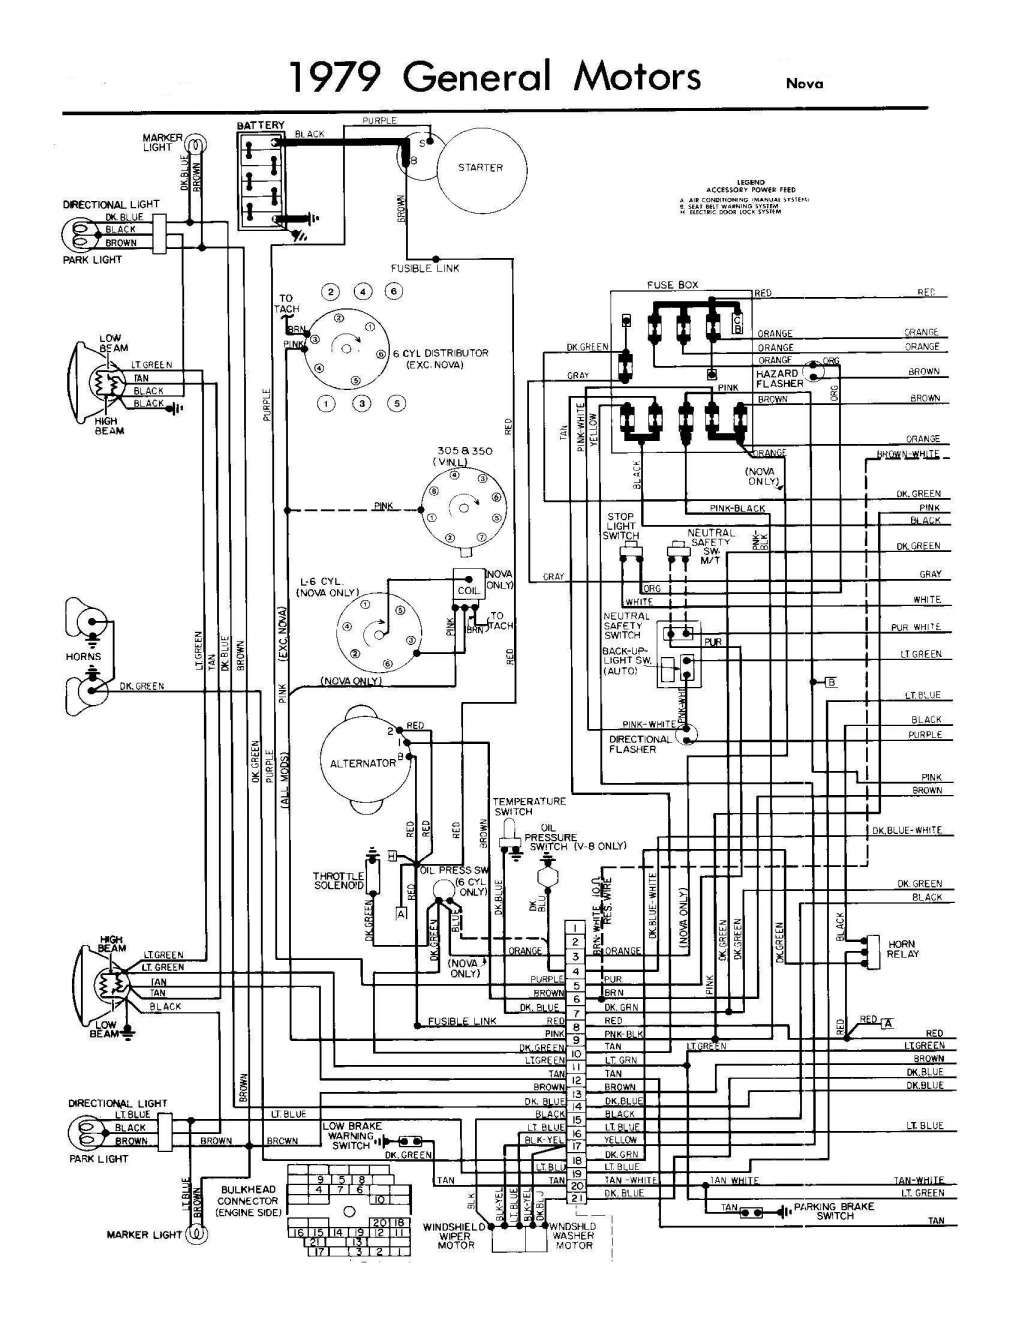 10+ 1980 Gmc Truck Wiring Diagram